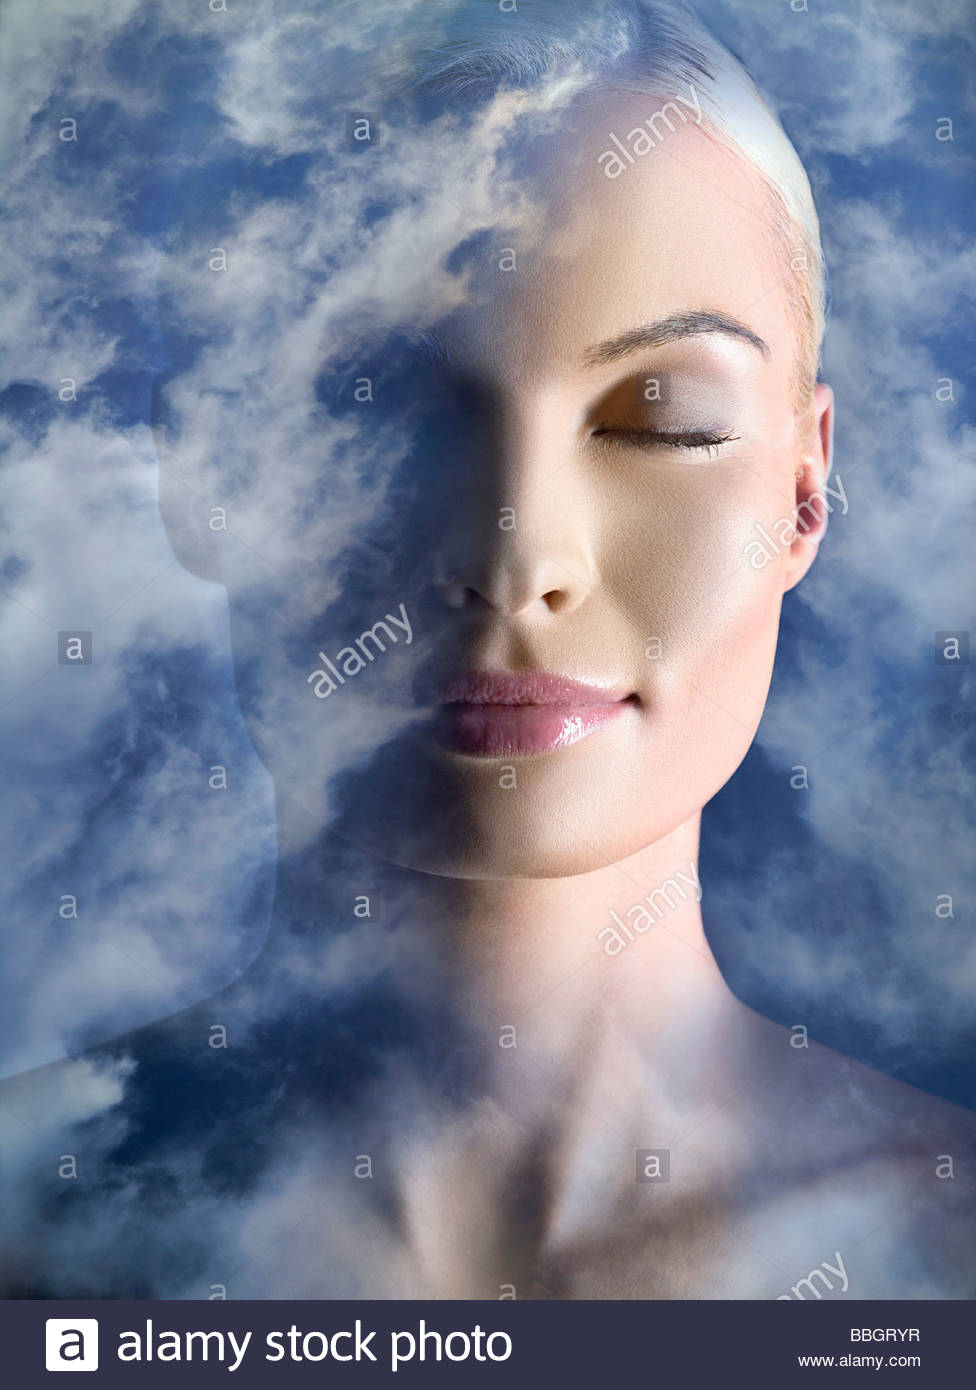 Portrait woman clouds, digital composite - Stock Image